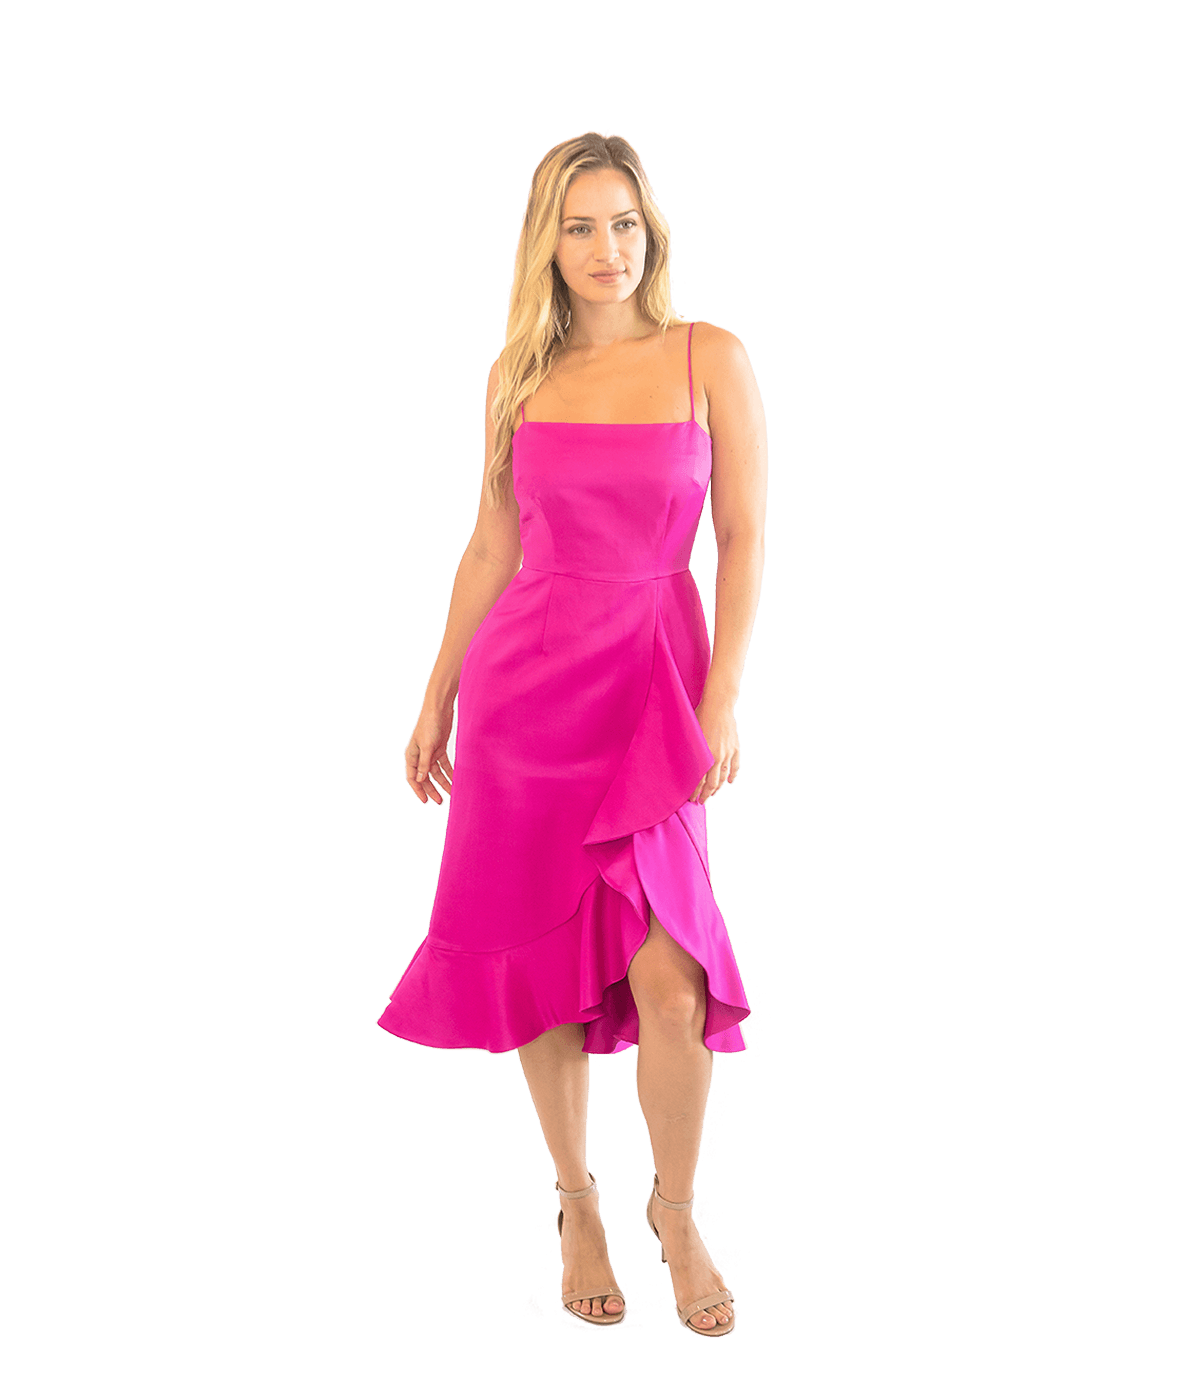 Ashley Dress - Lady Jetset